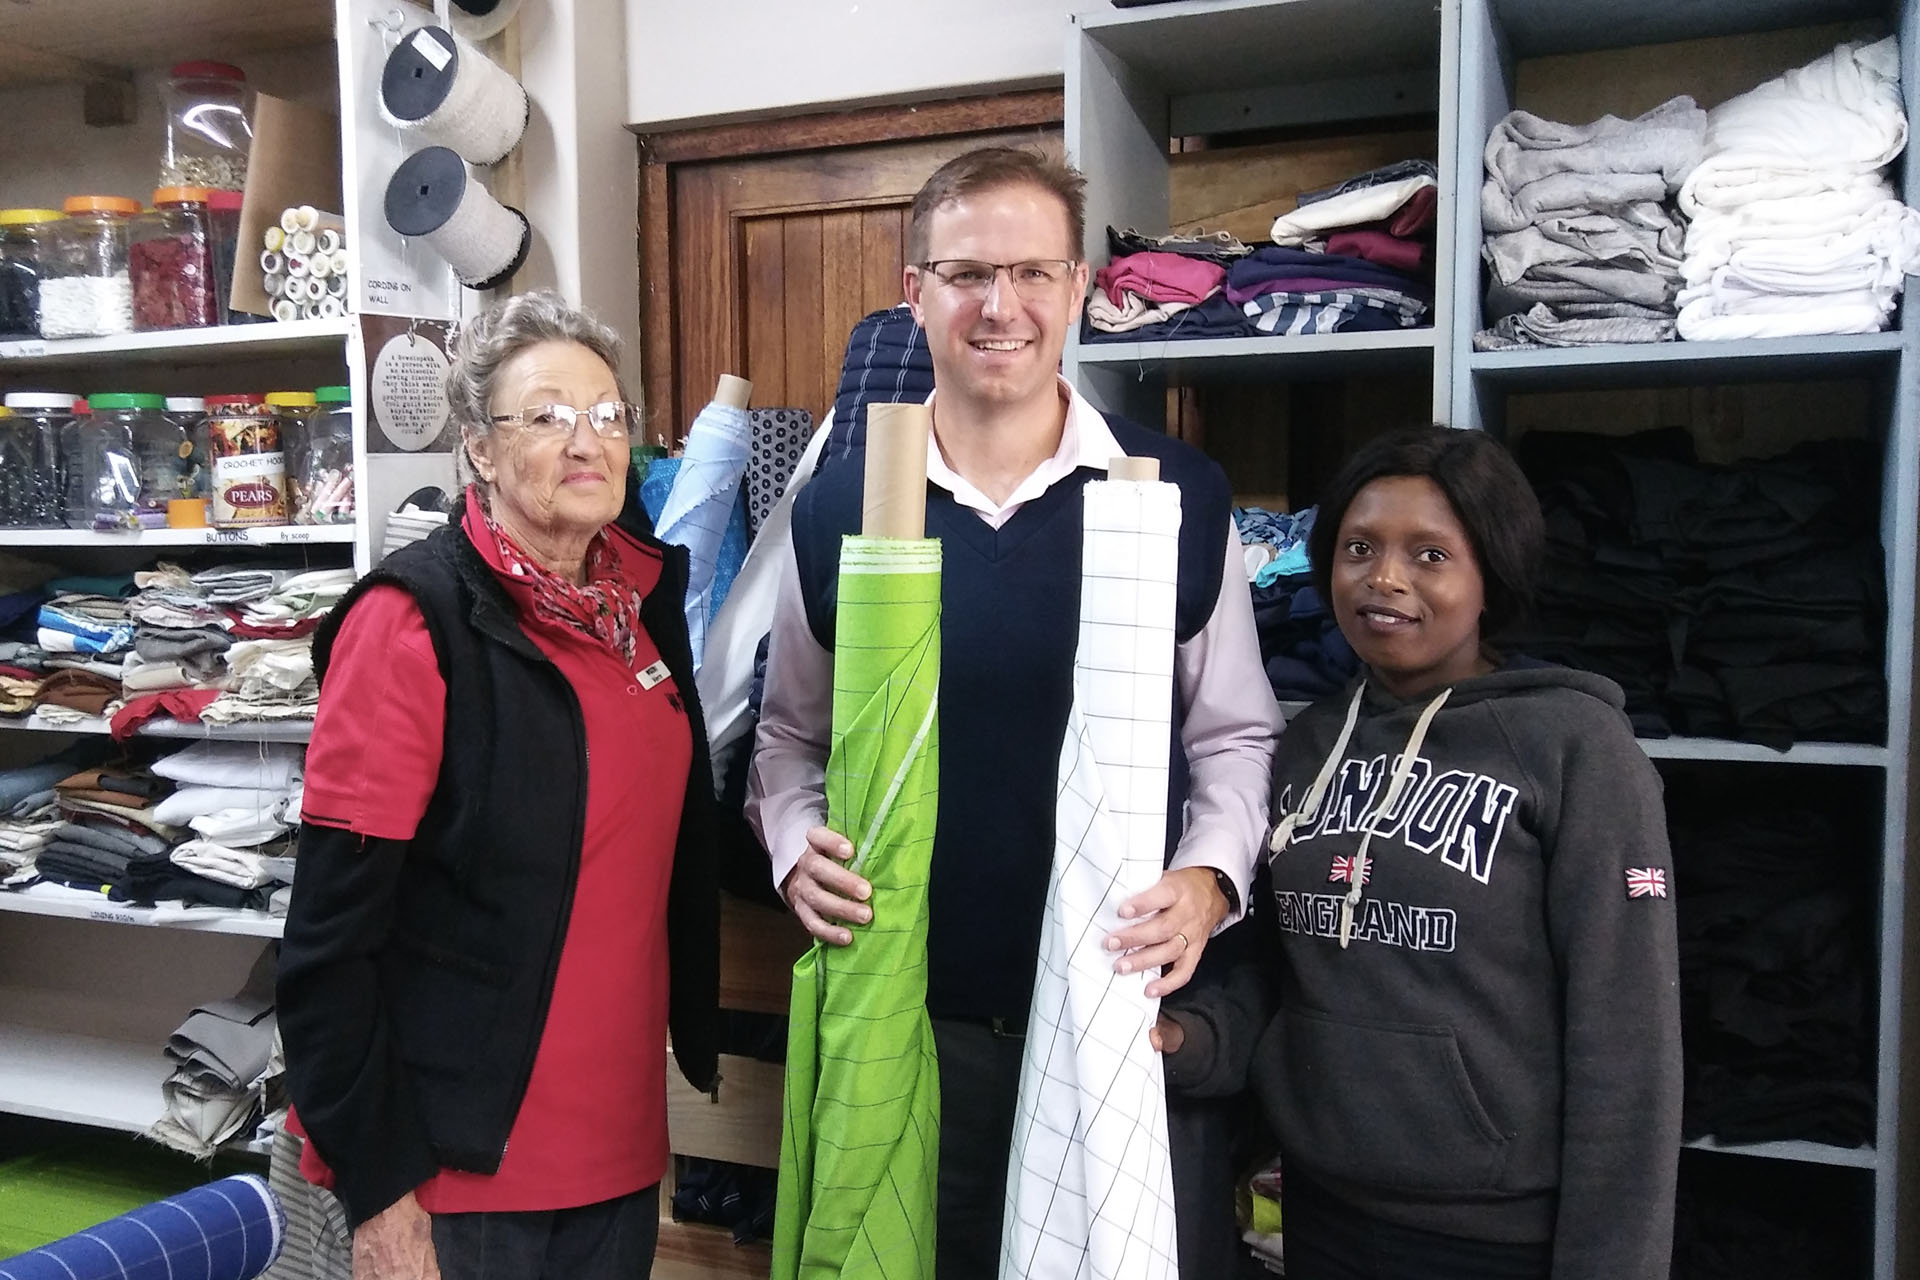 Fabric Donation Gives Haberdashery Project A Lift - Hillcrest AIDS Centre Trust News